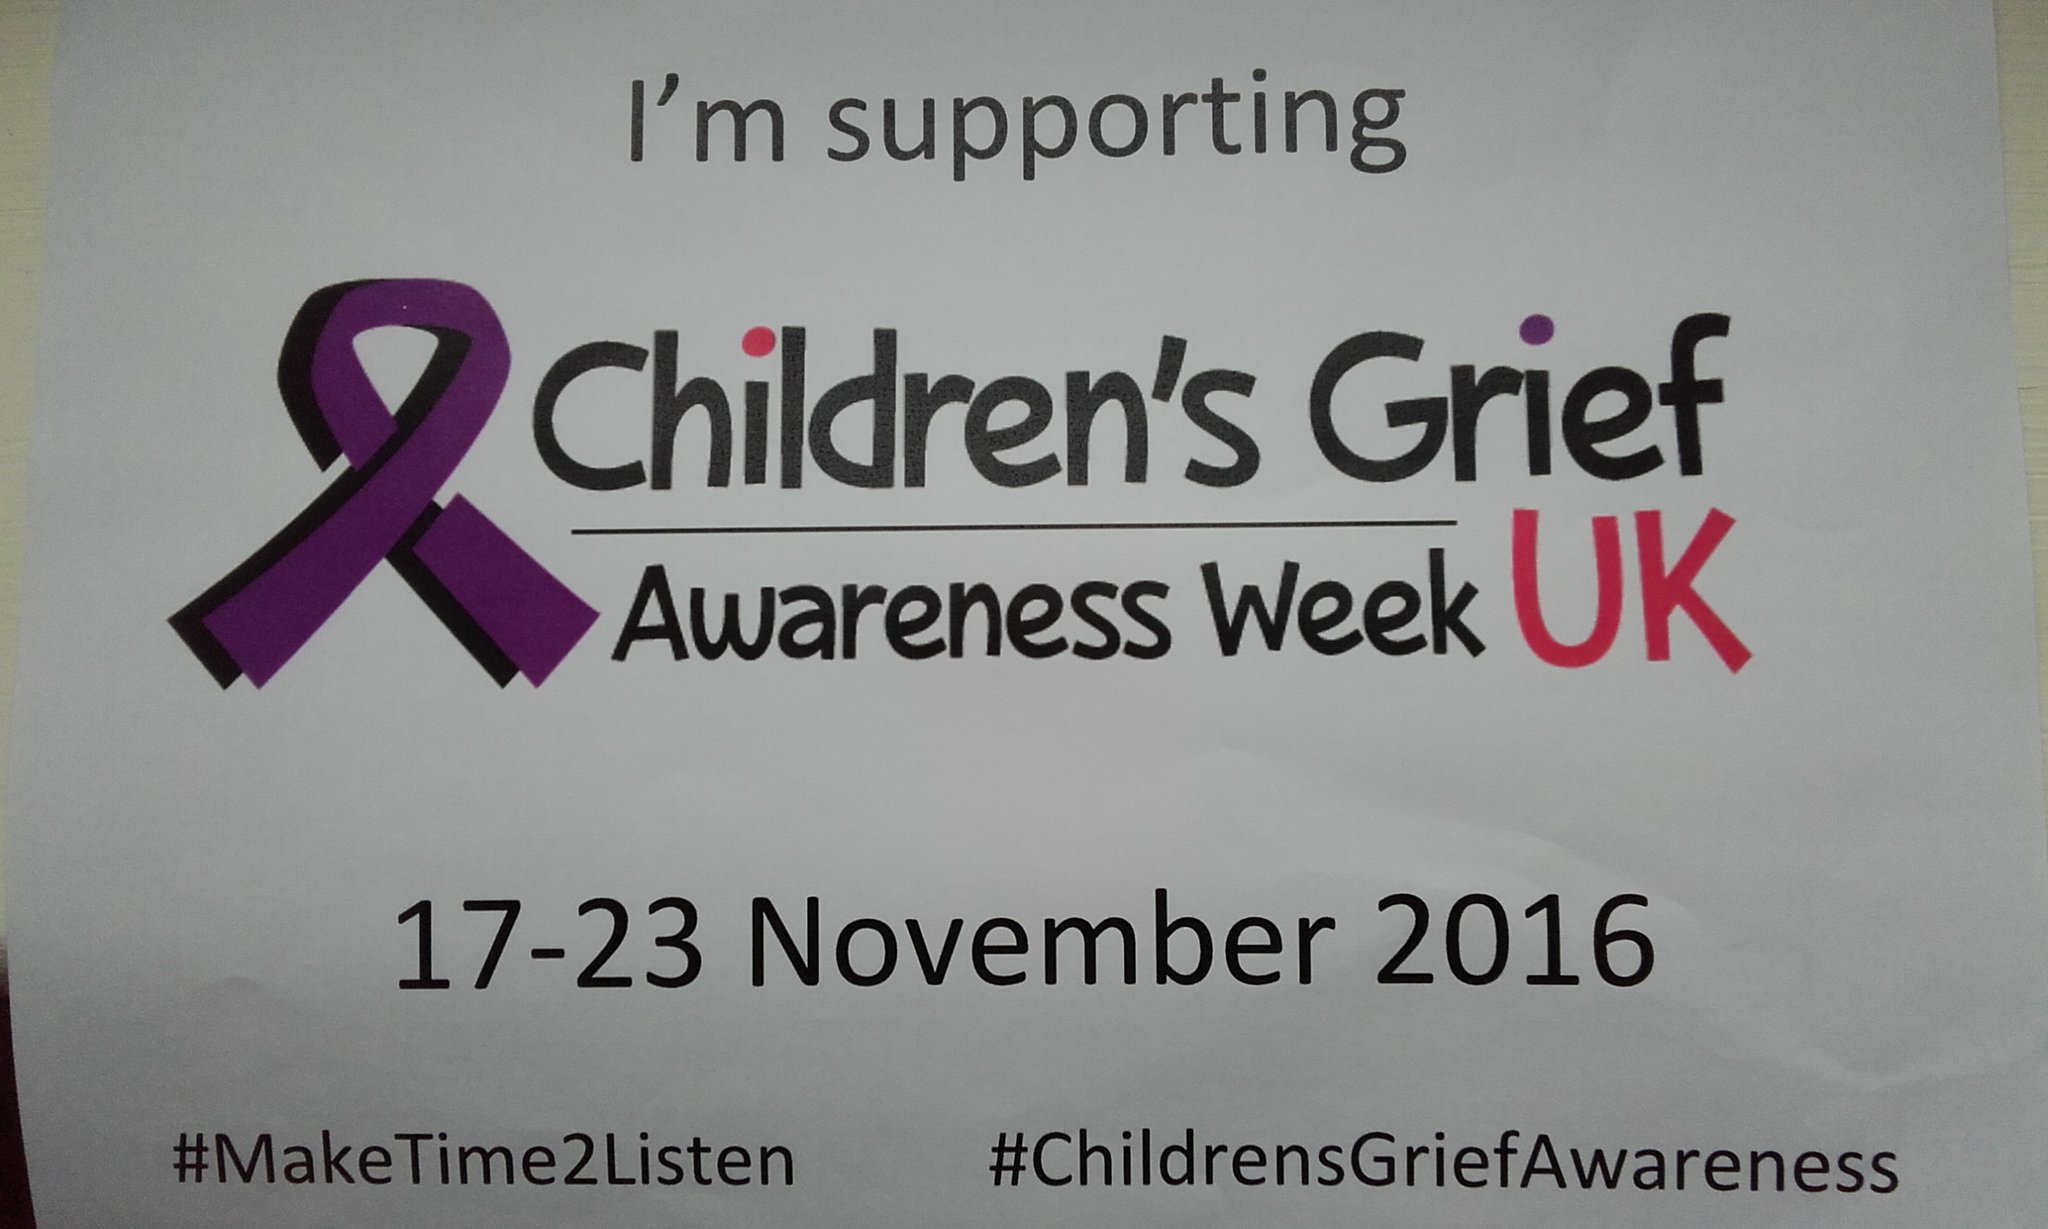 Glad to support #ChildrensGriefAwareness  week @CBNtweets. Follow #MakeTime2Listen for our event  @ODIdev 22 Nov https://t.co/vFCcLySzdM